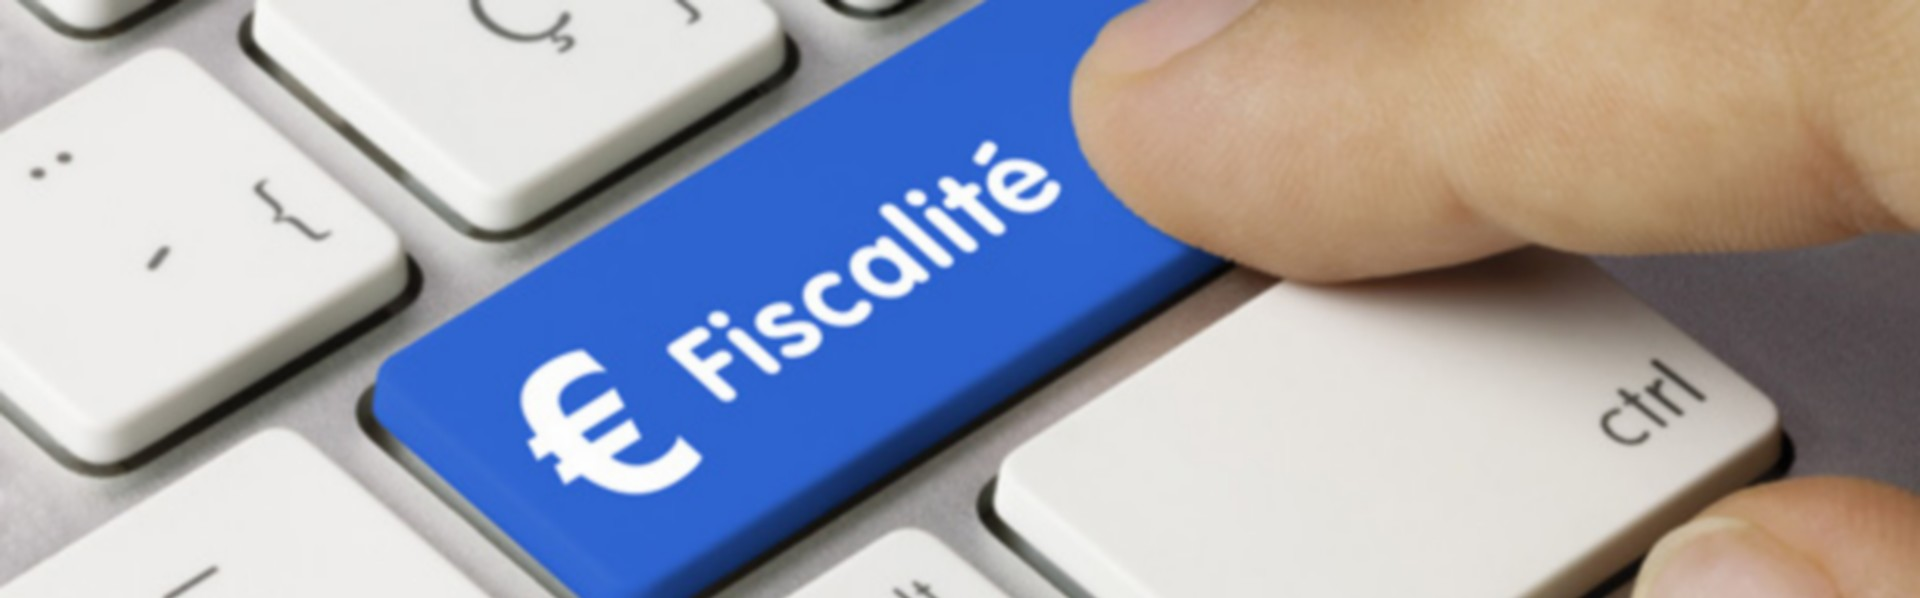 Fiscalitre 1